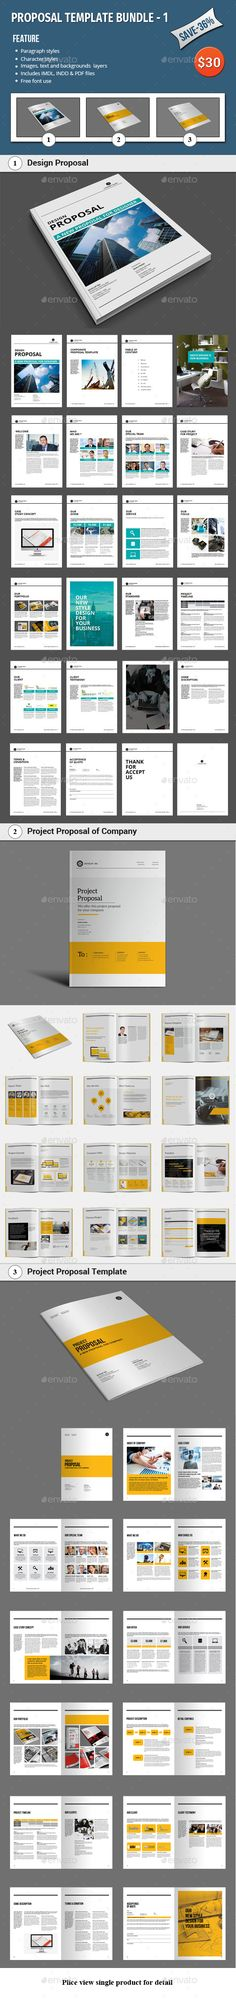 Proposal Proposal templates, Proposals and Stationery - professional project proposal